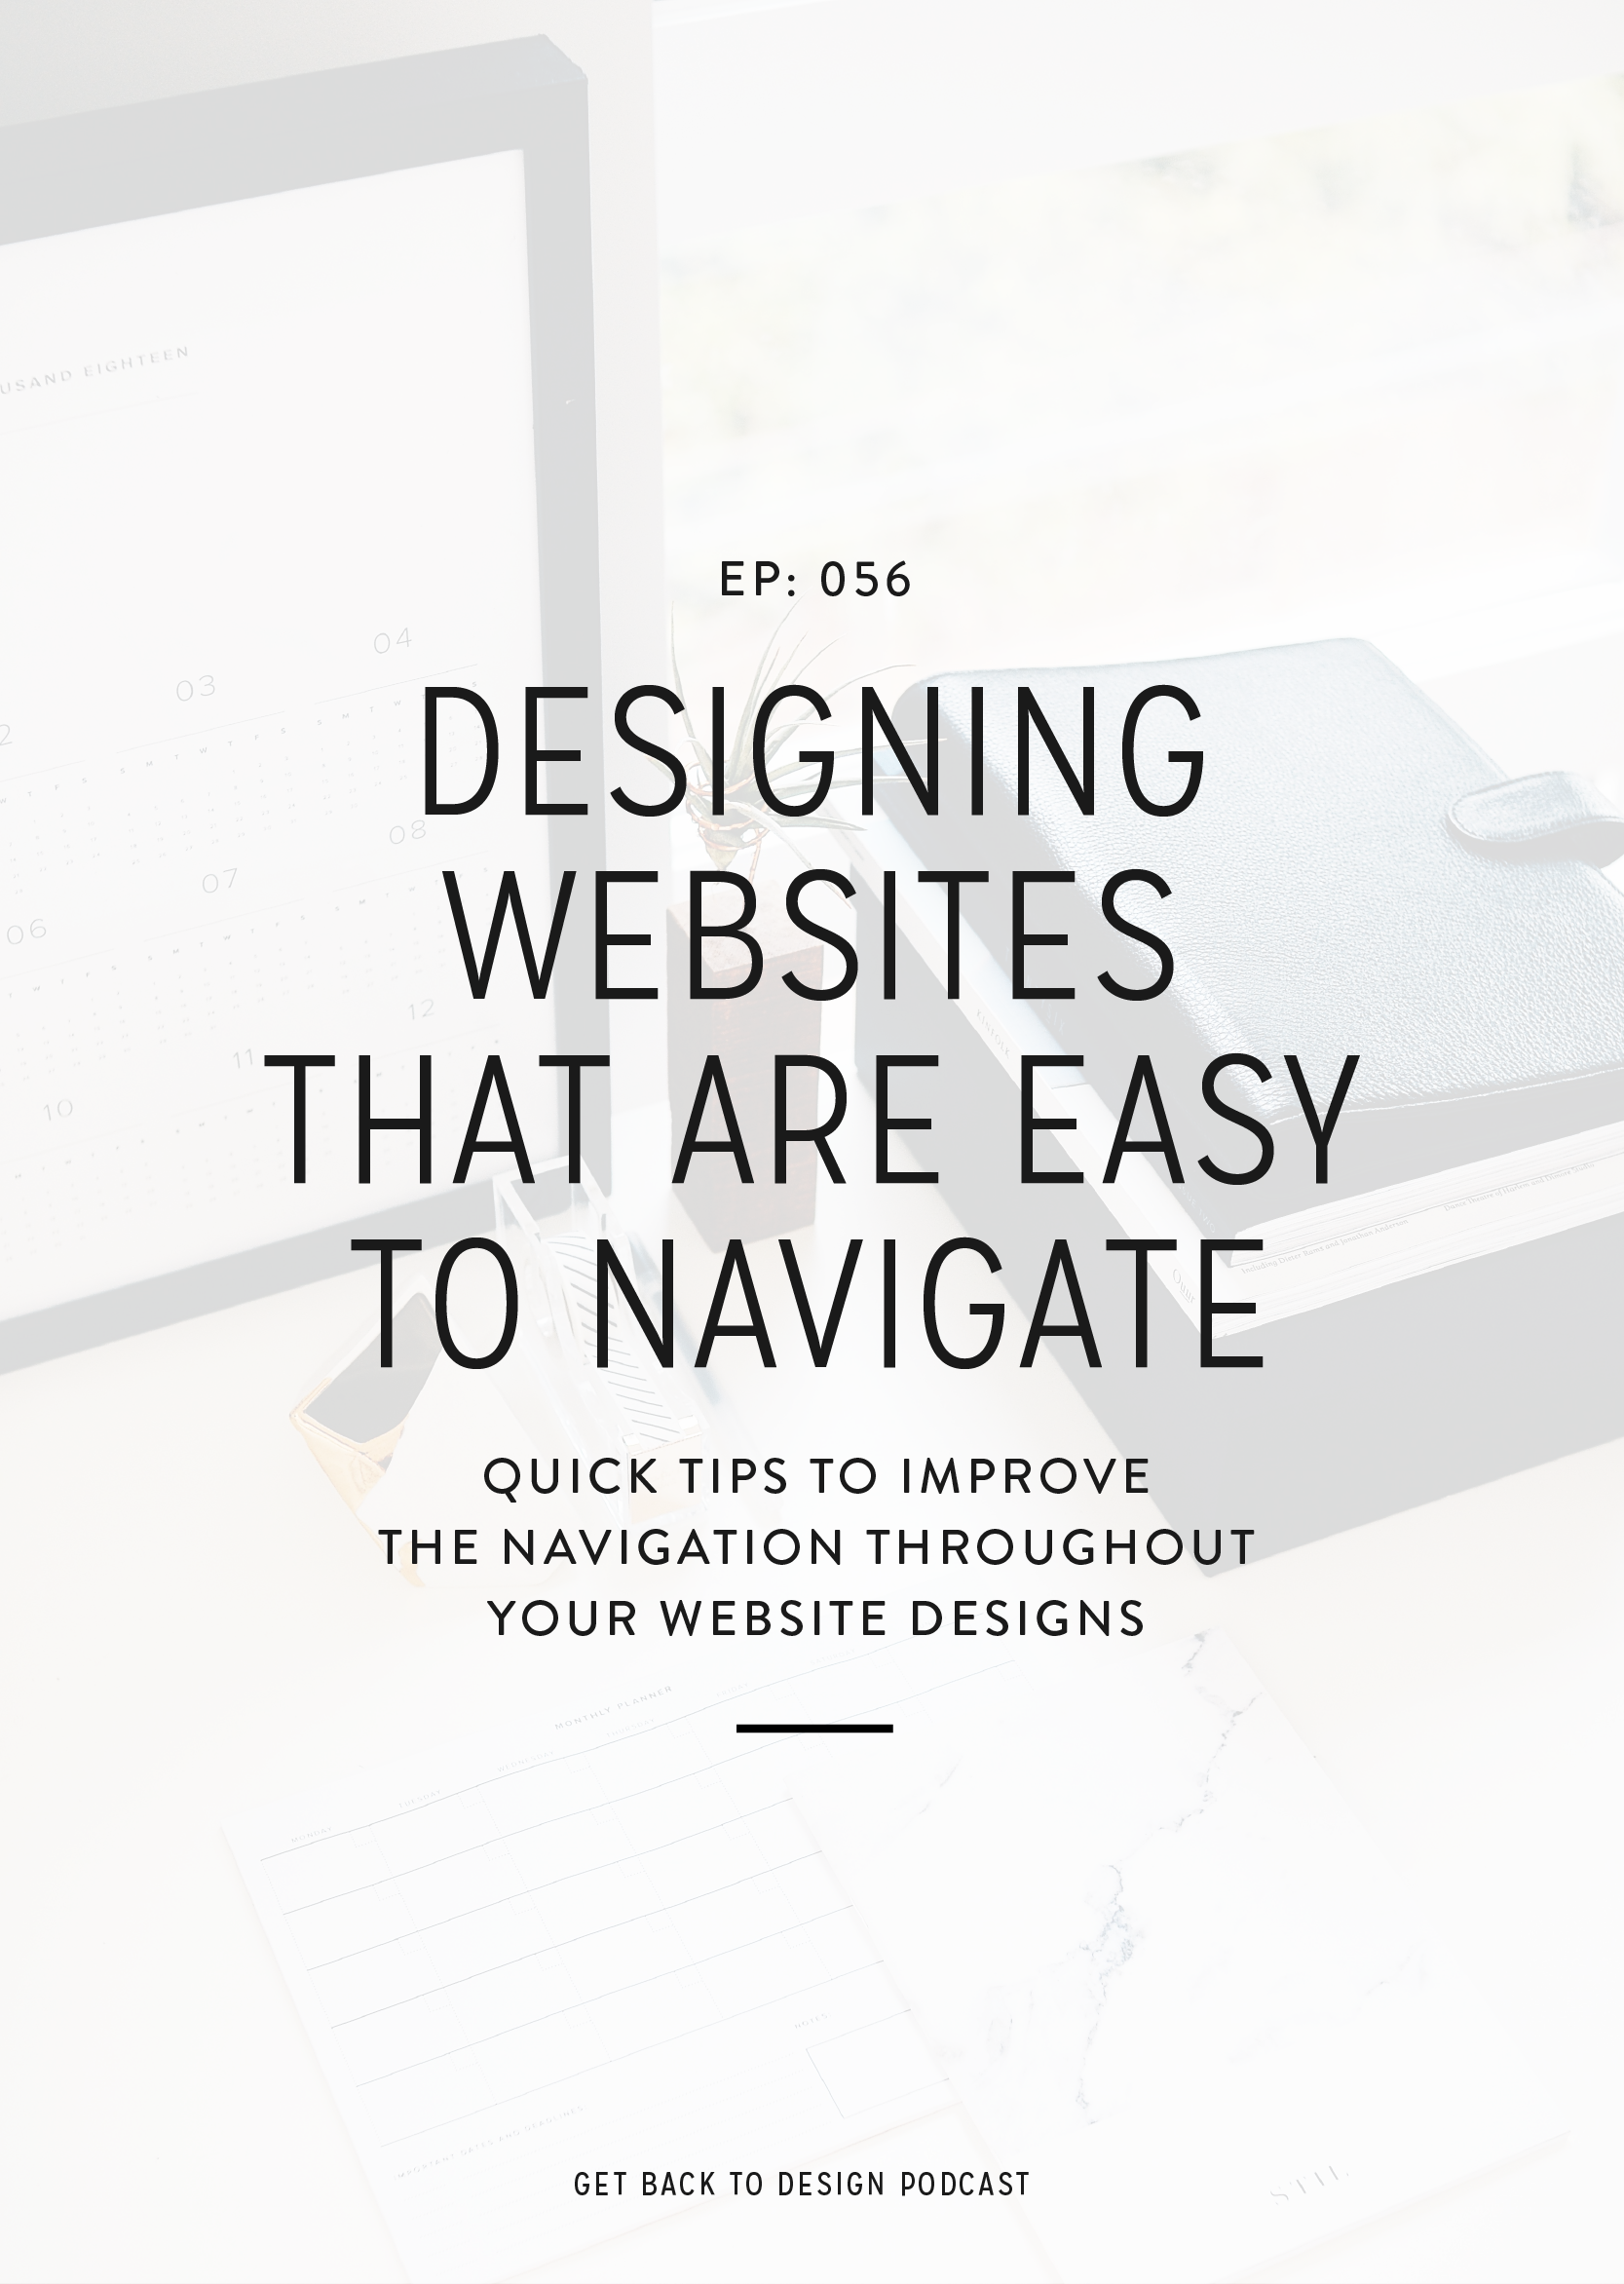 When we think about website navigation, it's easy to consider the menu at the top and that's it. But there are other pieces that should be considered. It can feel like a lot to think about, so today we'll go over some quick tips to design websites that are easy to navigate.